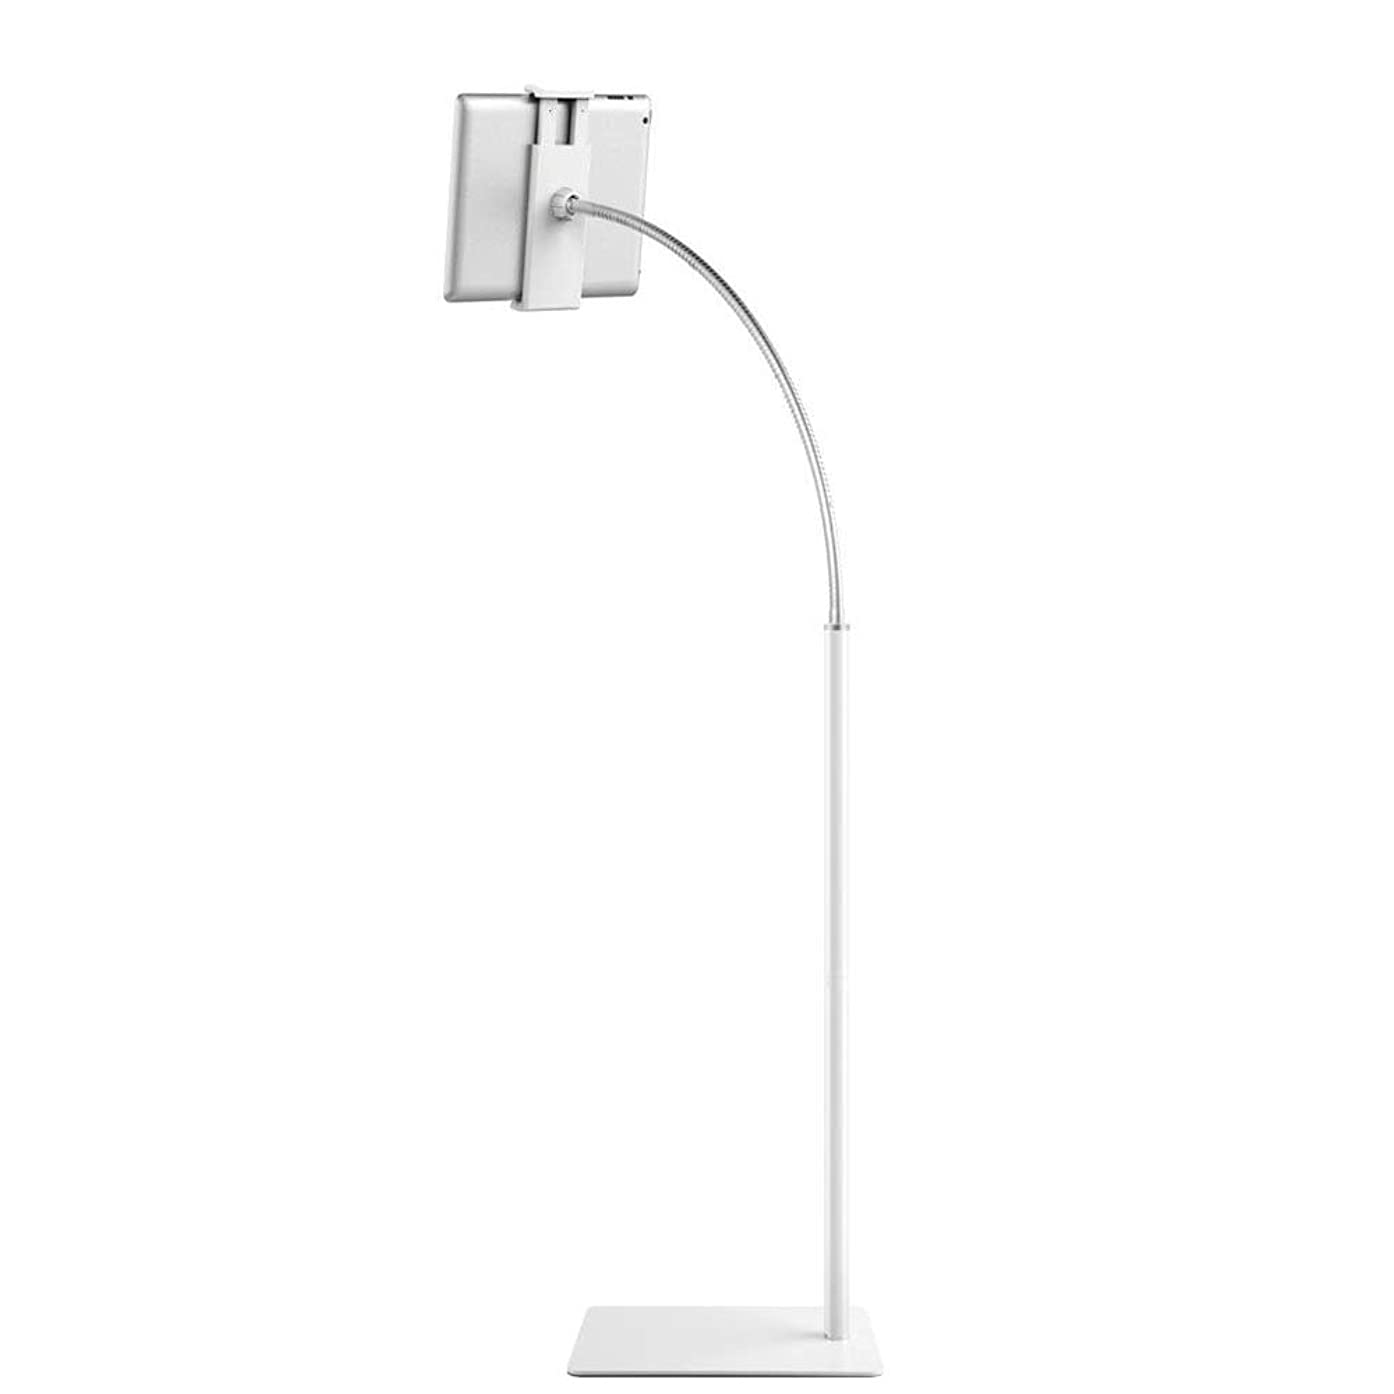 ZKZK Tablet Stand Cell Phone Stand with Flexible Gooseneck and Stable Base Adjustable 360 Degree Rotating Floor Stand for iPad Within 3.5-10.6 inches (White)